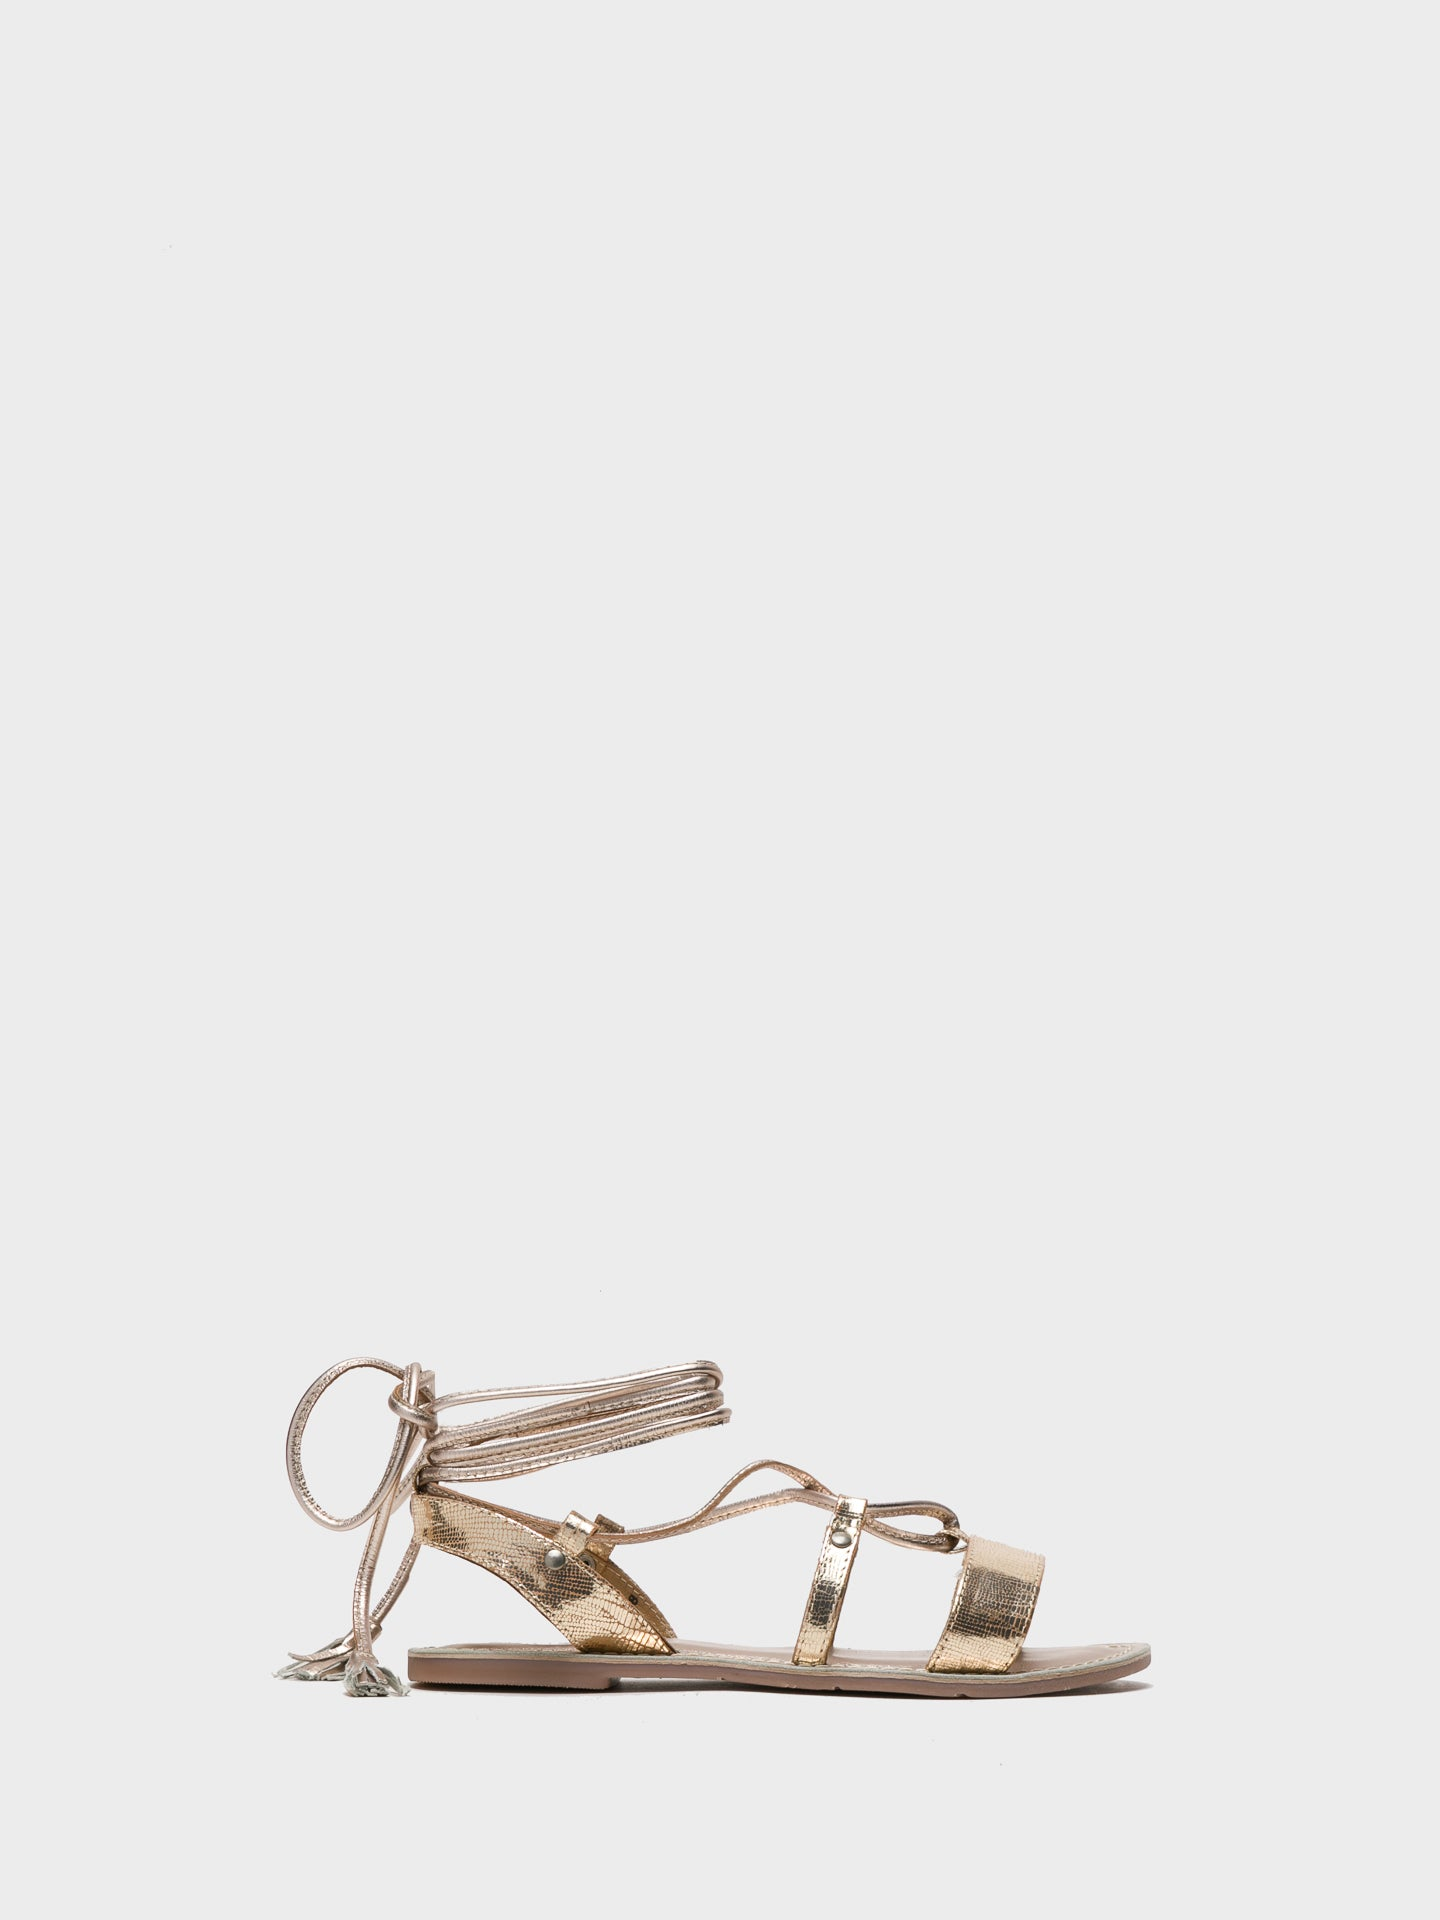 Foreva Gold Gladiator Sandals